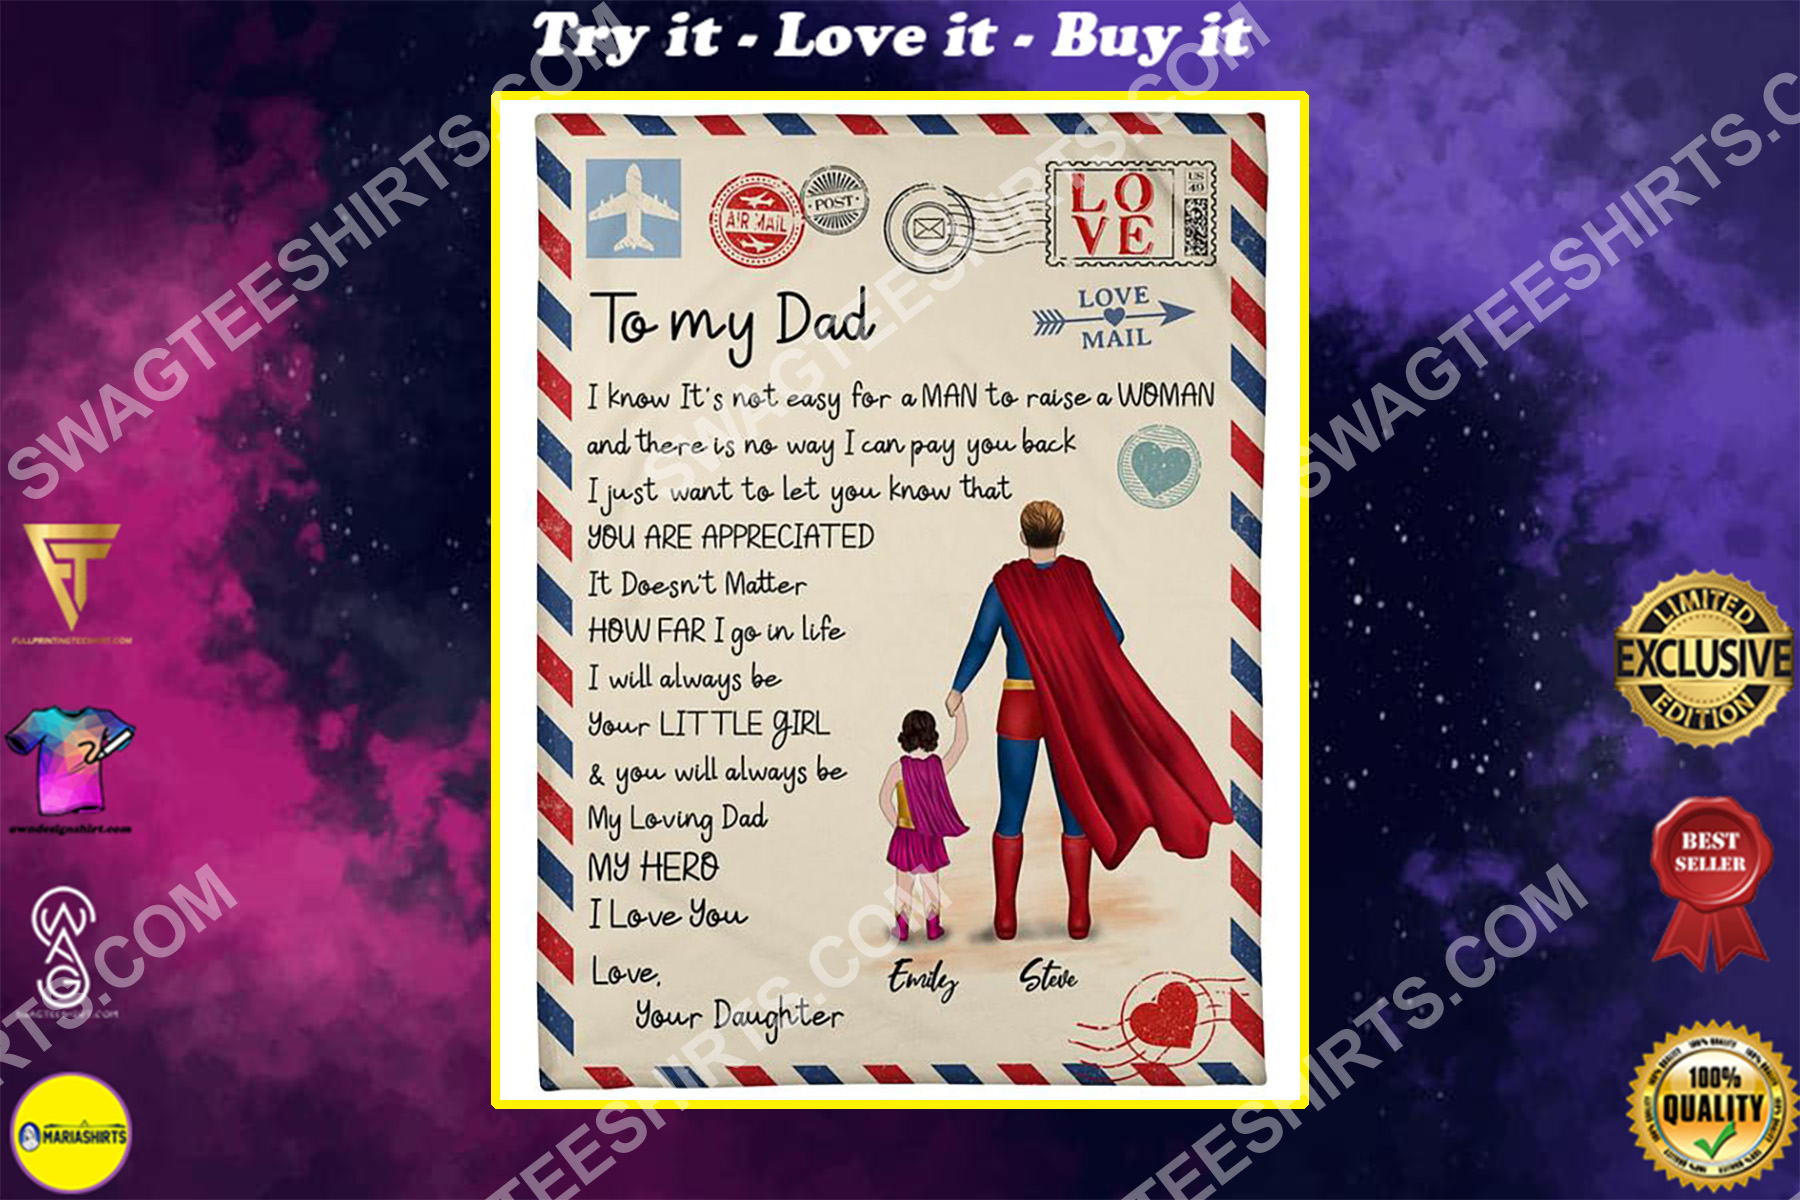 air mail to my dad i know its not easy for a man to raise a woman blanket